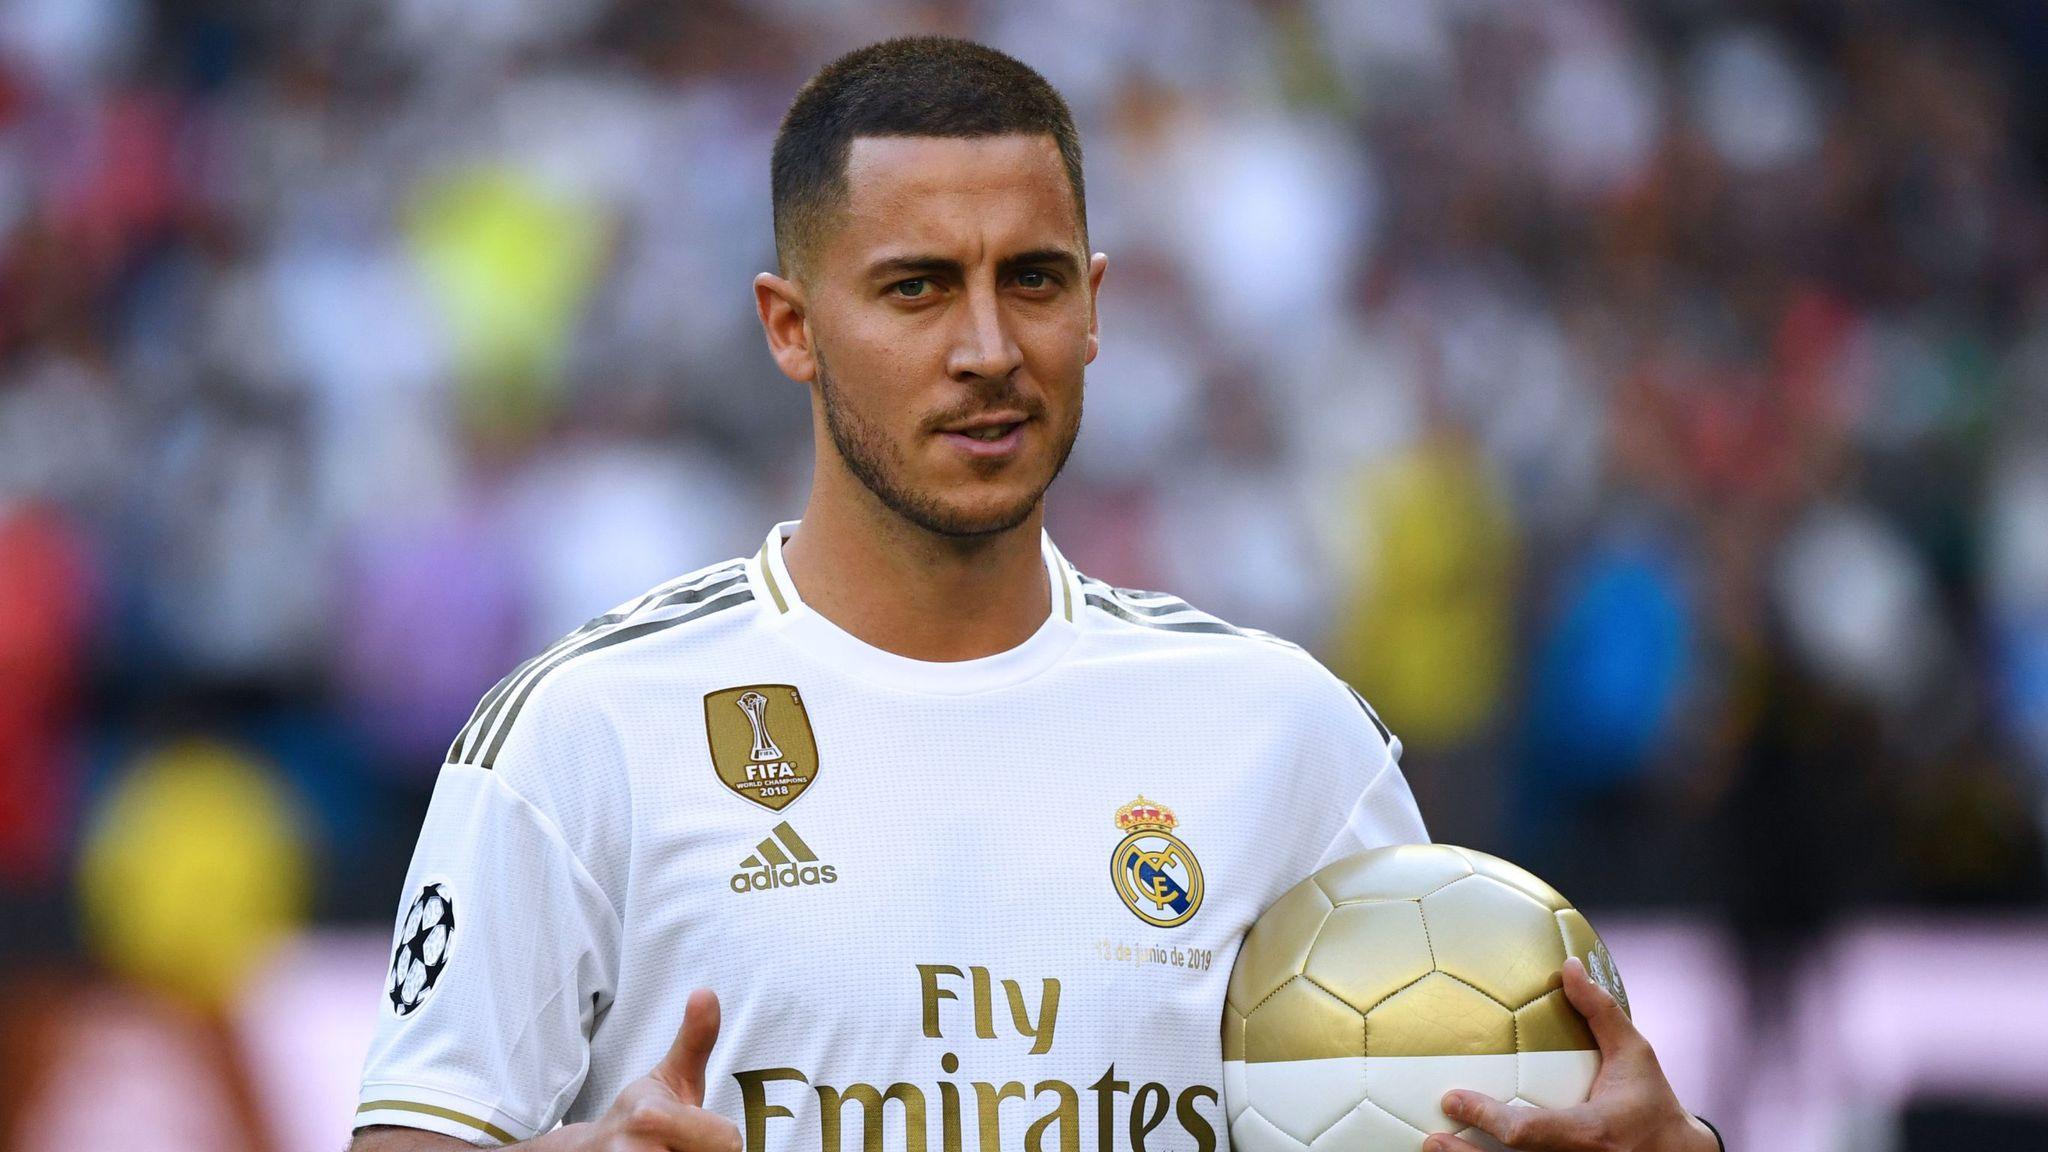 Eden Hazard out to make history at Real Madrid after